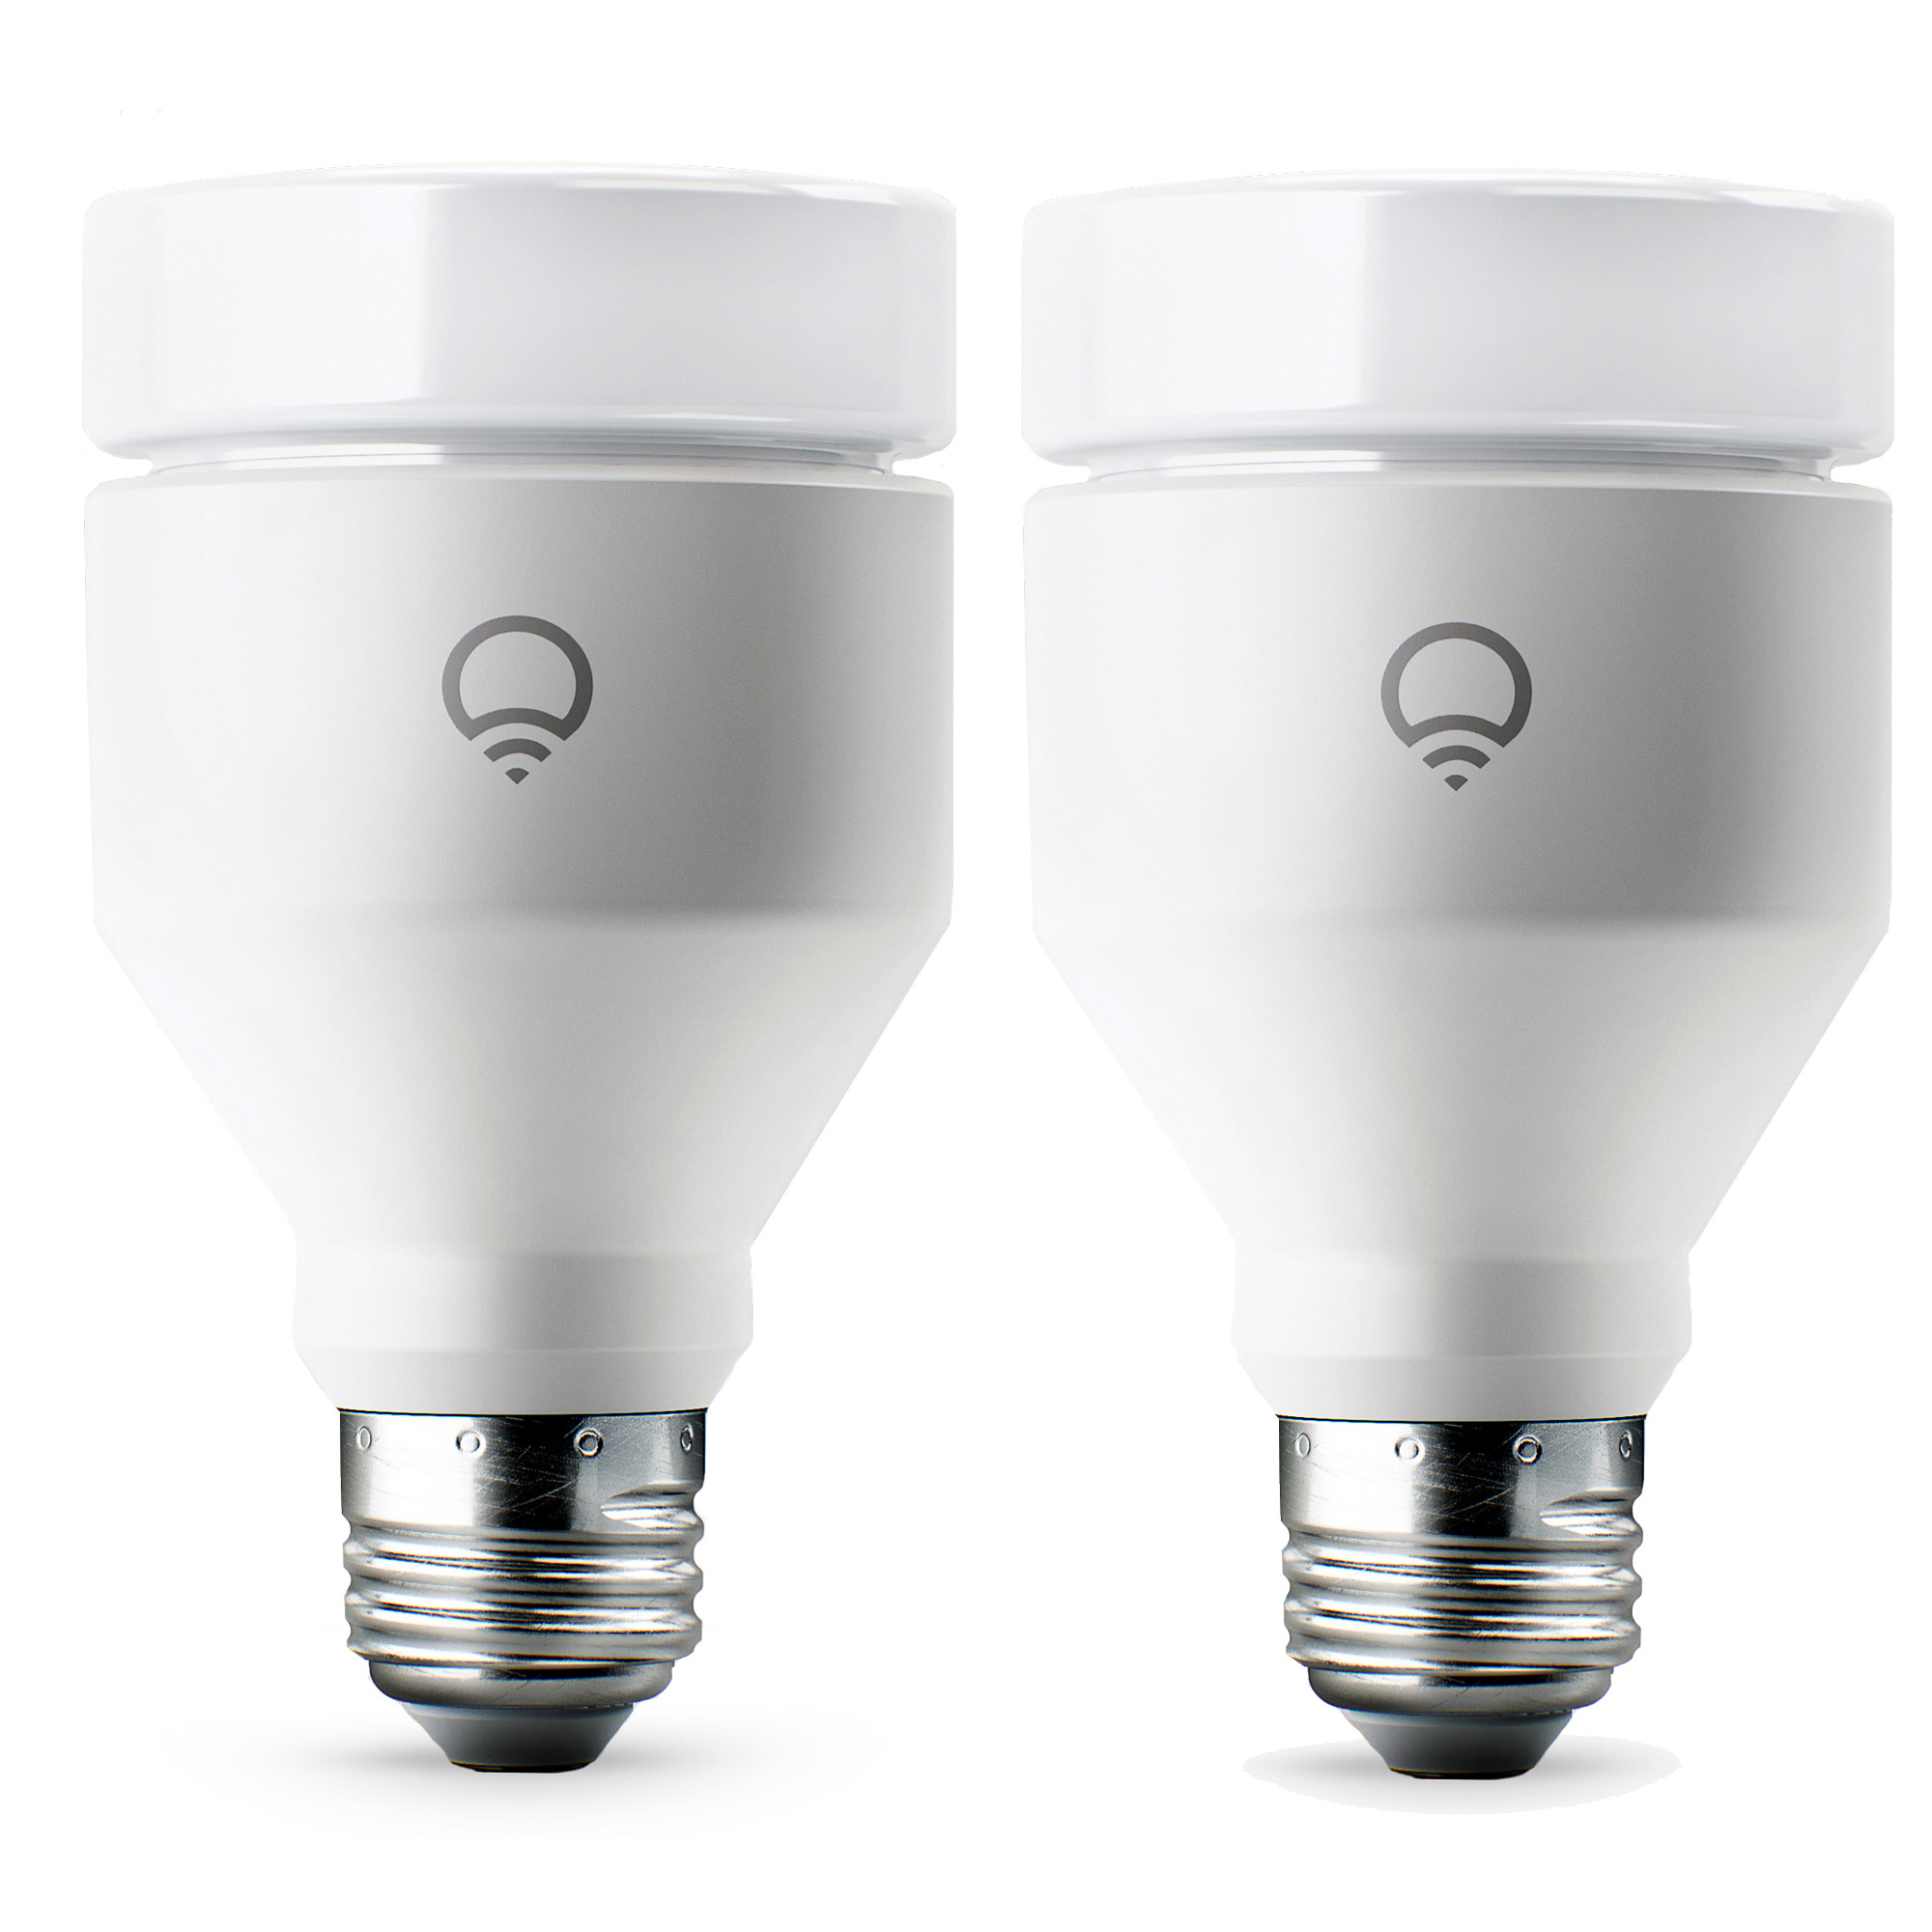 LIFX A19 E26 11W WiFi Smart Dimmable Cool Warm Colored LED Light Bulb (2 Pack)